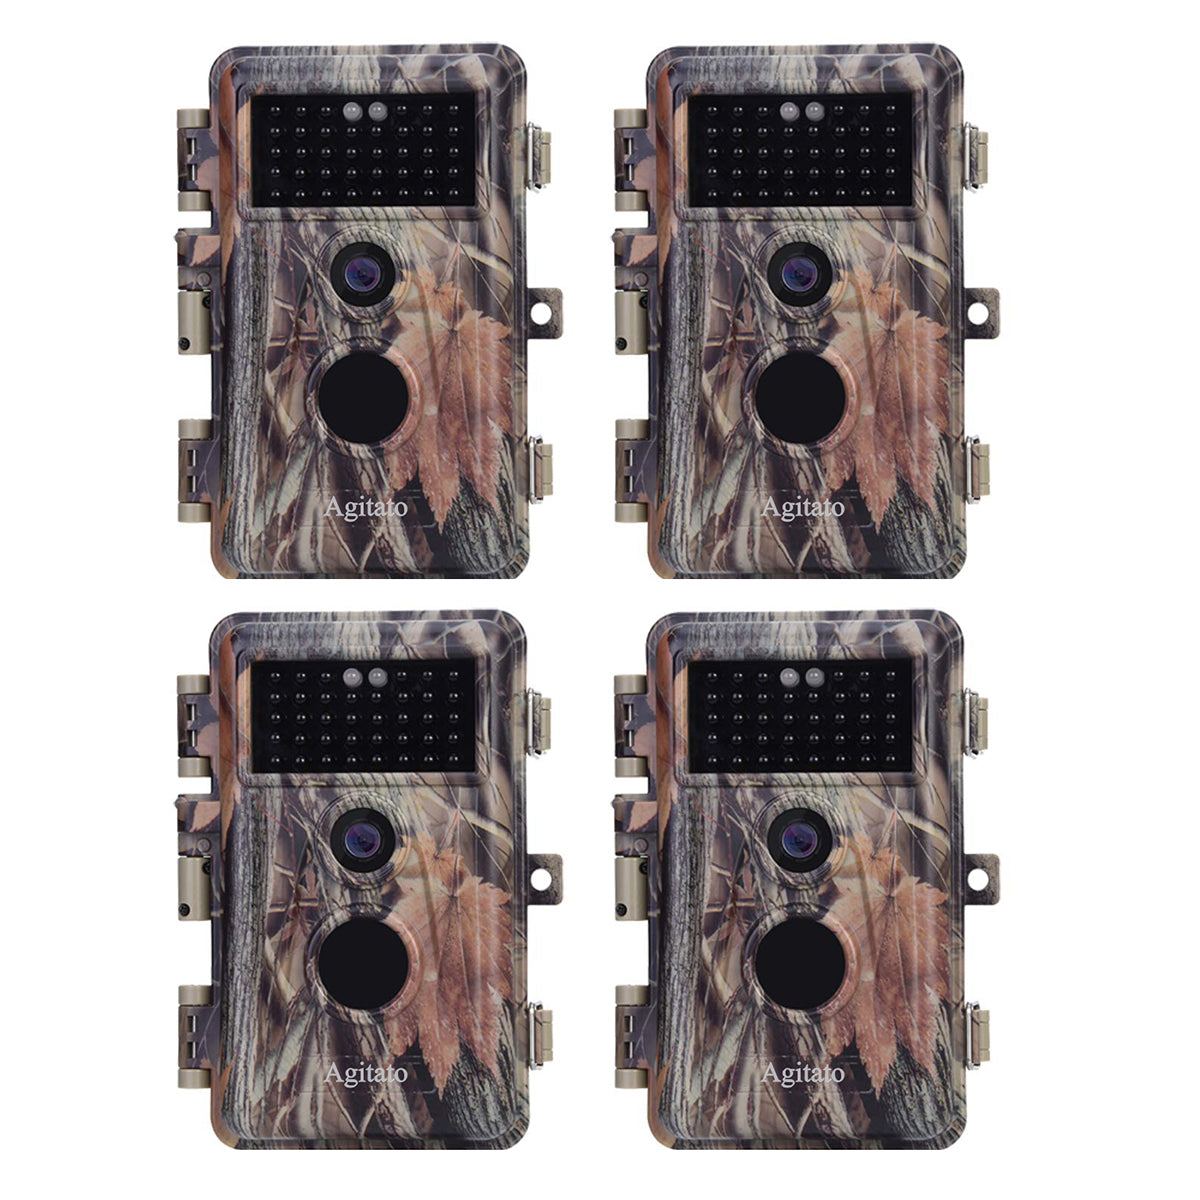 4-Pack 16MP 1080P Hunting Trail Wildlife Deer Cams No Glow Infrared 0.6S Trigger Motion Activated IP66 Waterproof Multi-shot Photo and Video Mode